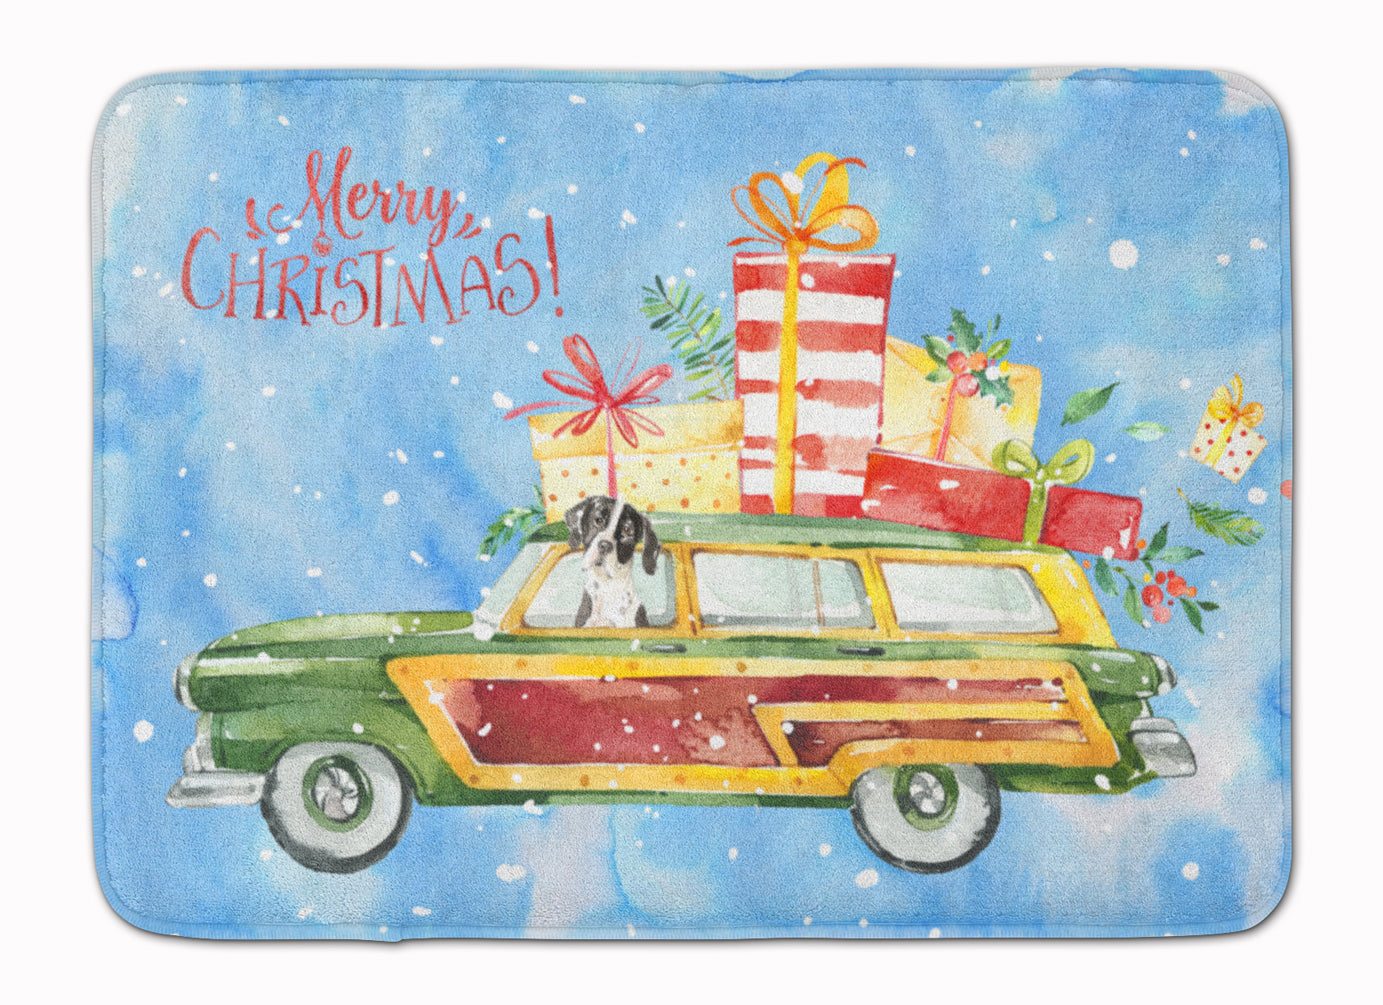 Merry Christmas English Pointer Machine Washable Memory Foam Mat CK2405RUG by Caroline's Treasures